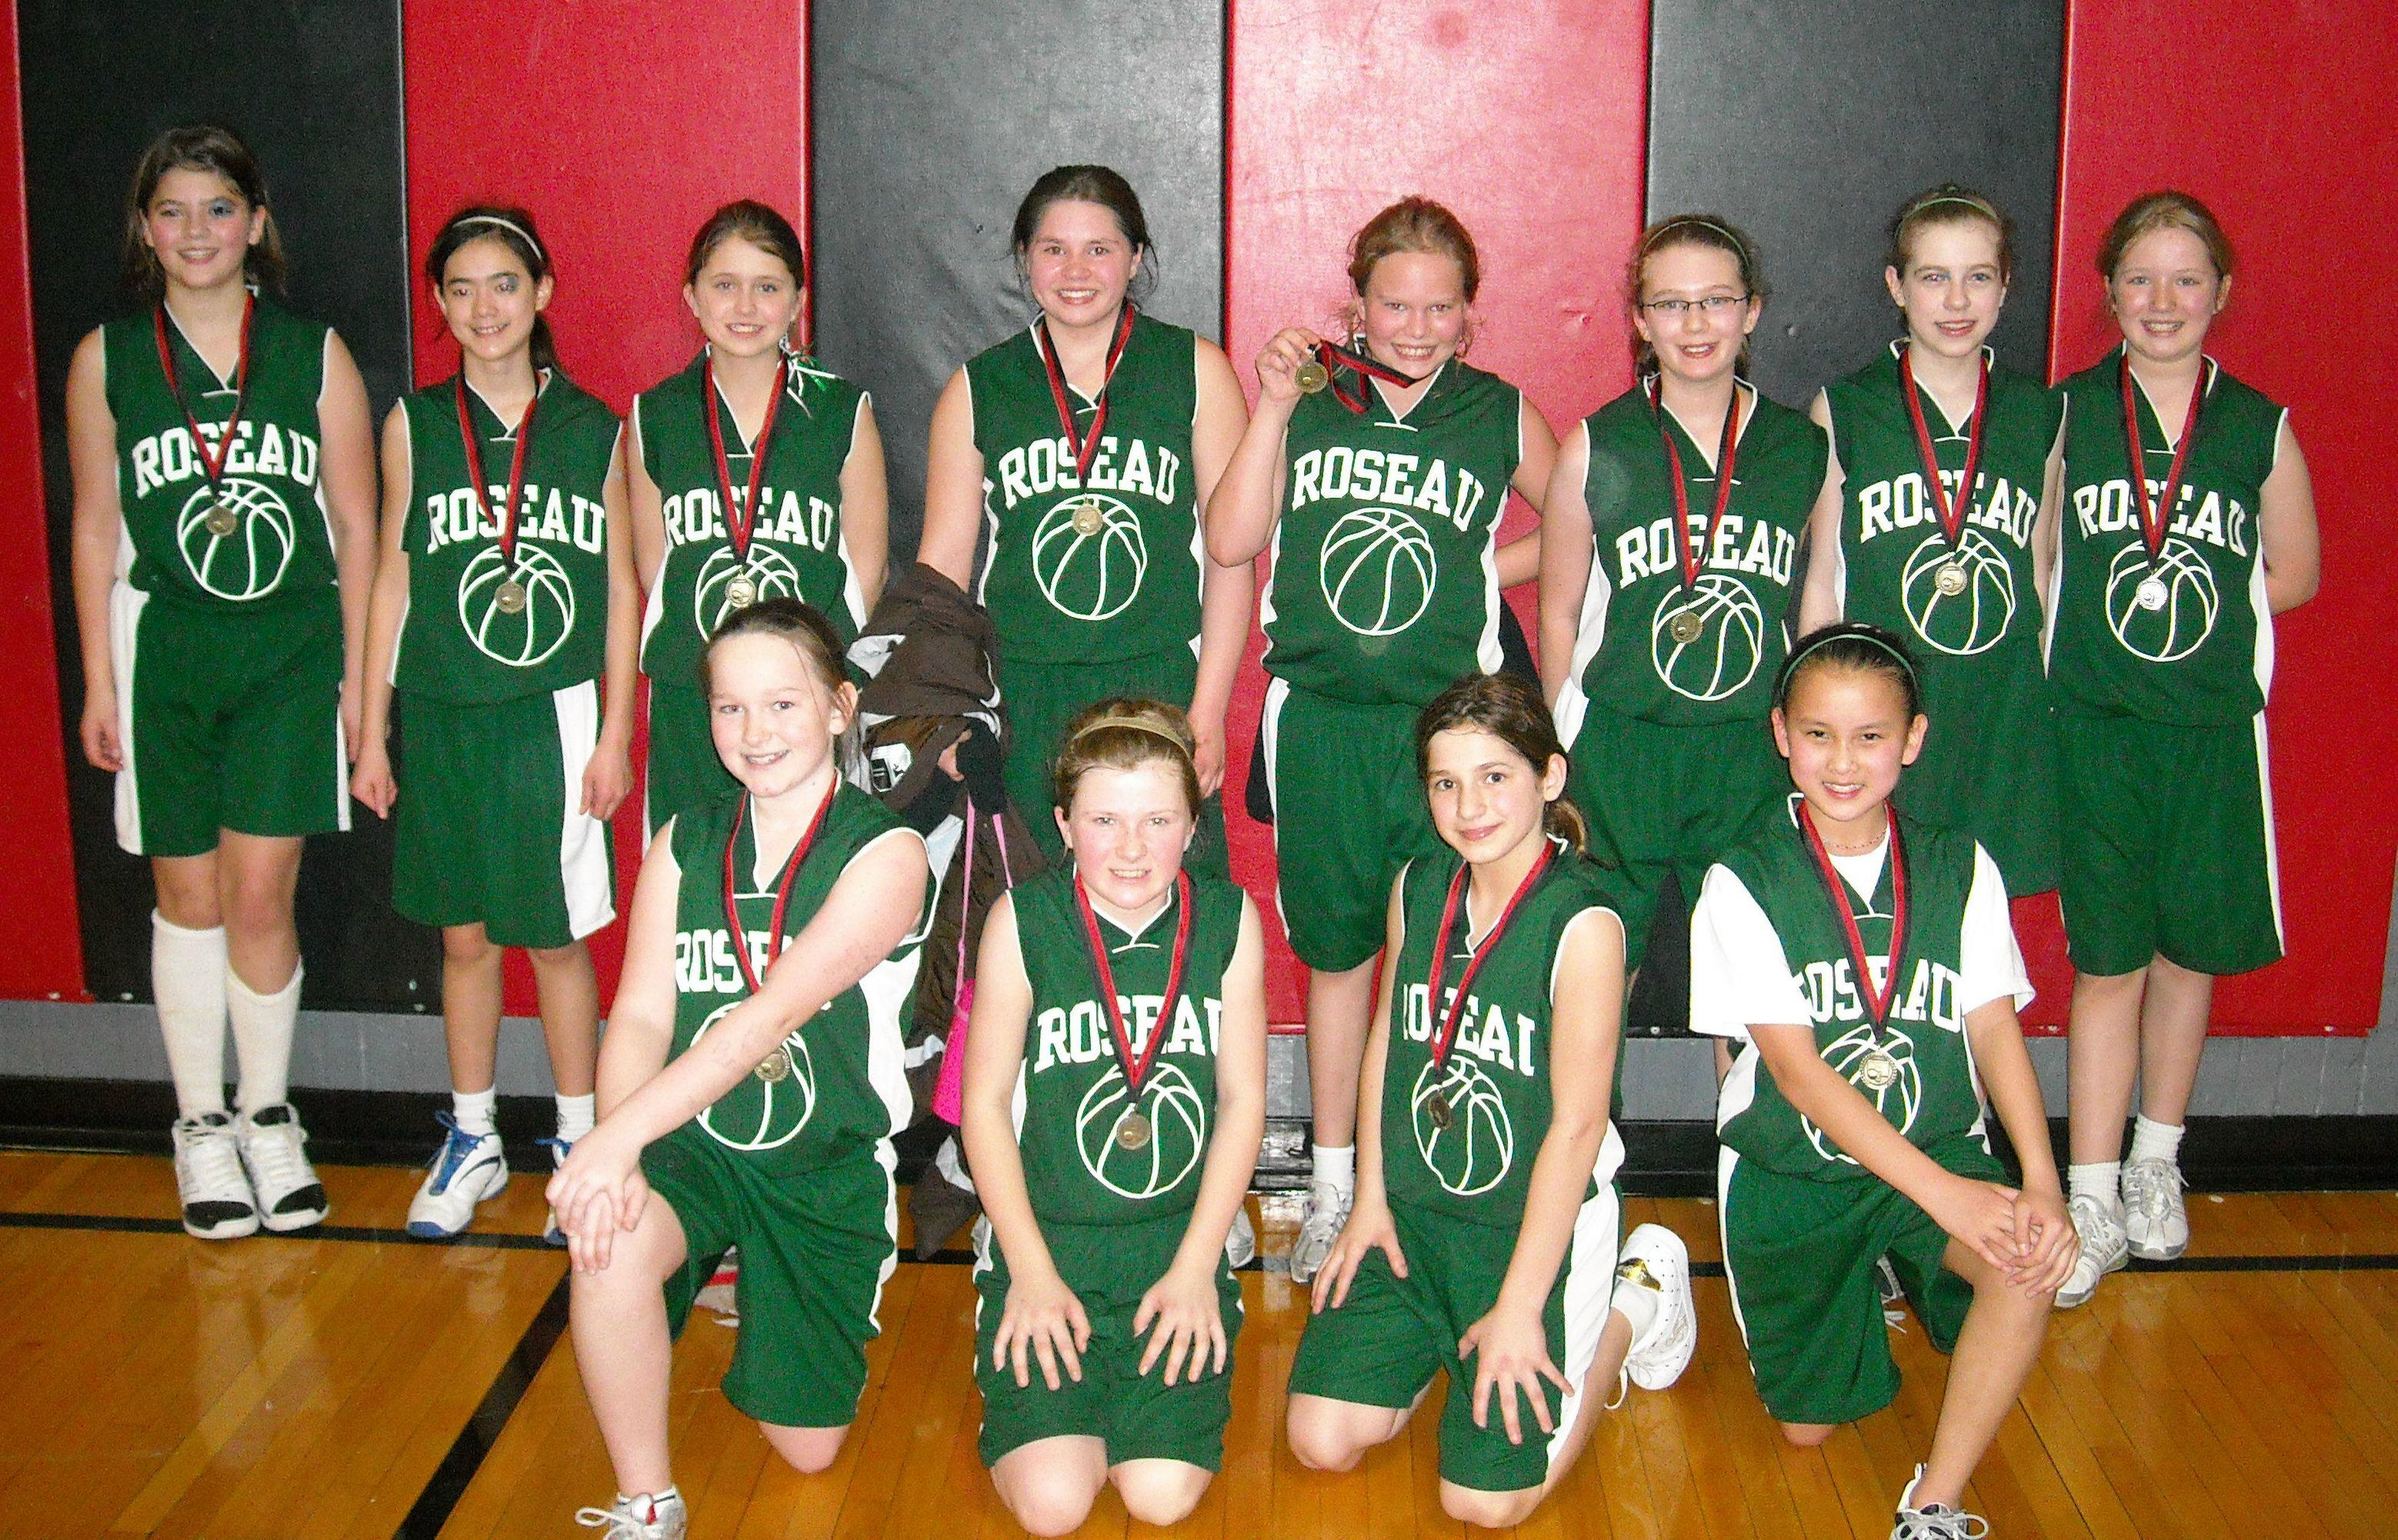 roseau 6th grade team #2